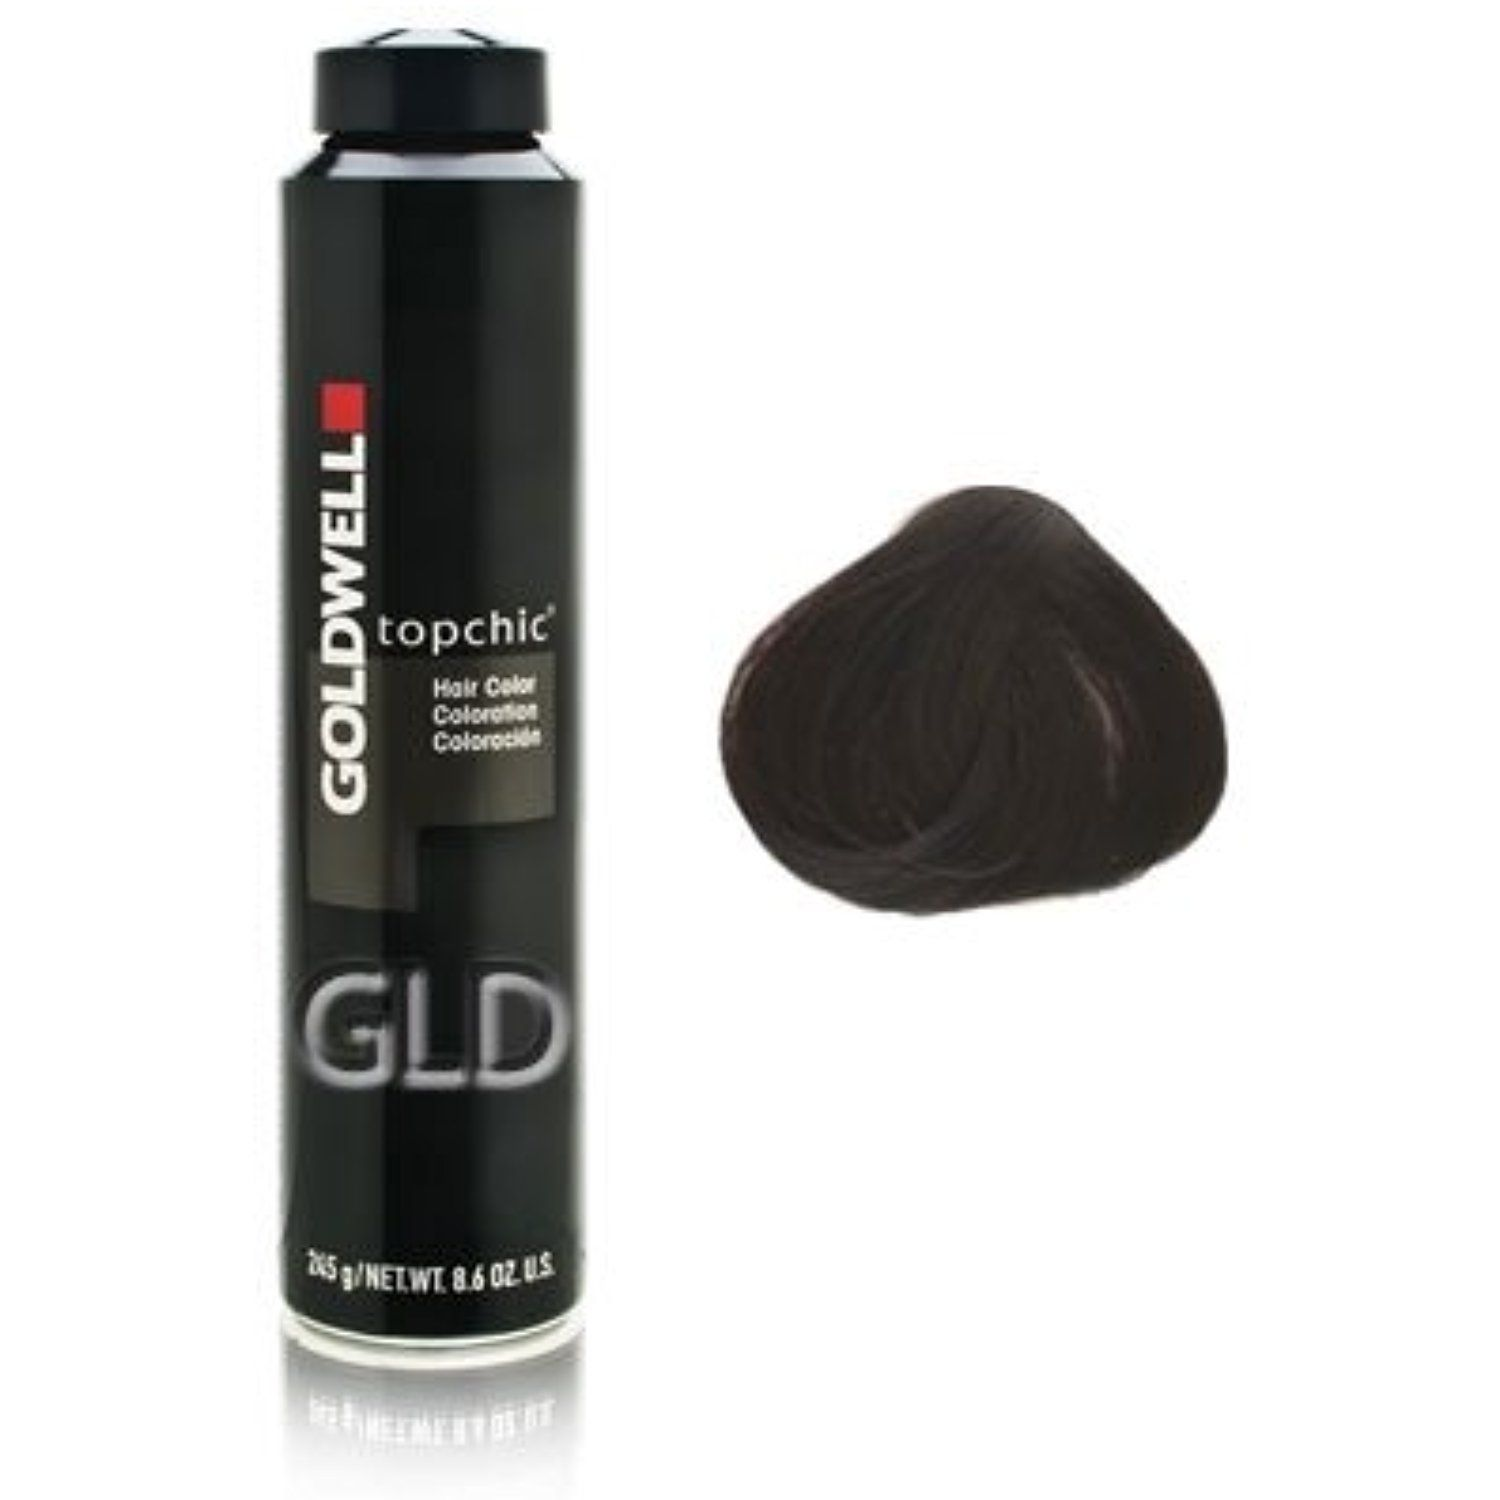 Goldwell Topchic Hair Color Coloration Can 4g Chestnut Click Image To Review More Details This Is An Affiliate Link Goldwell Hair Color Color Corrector